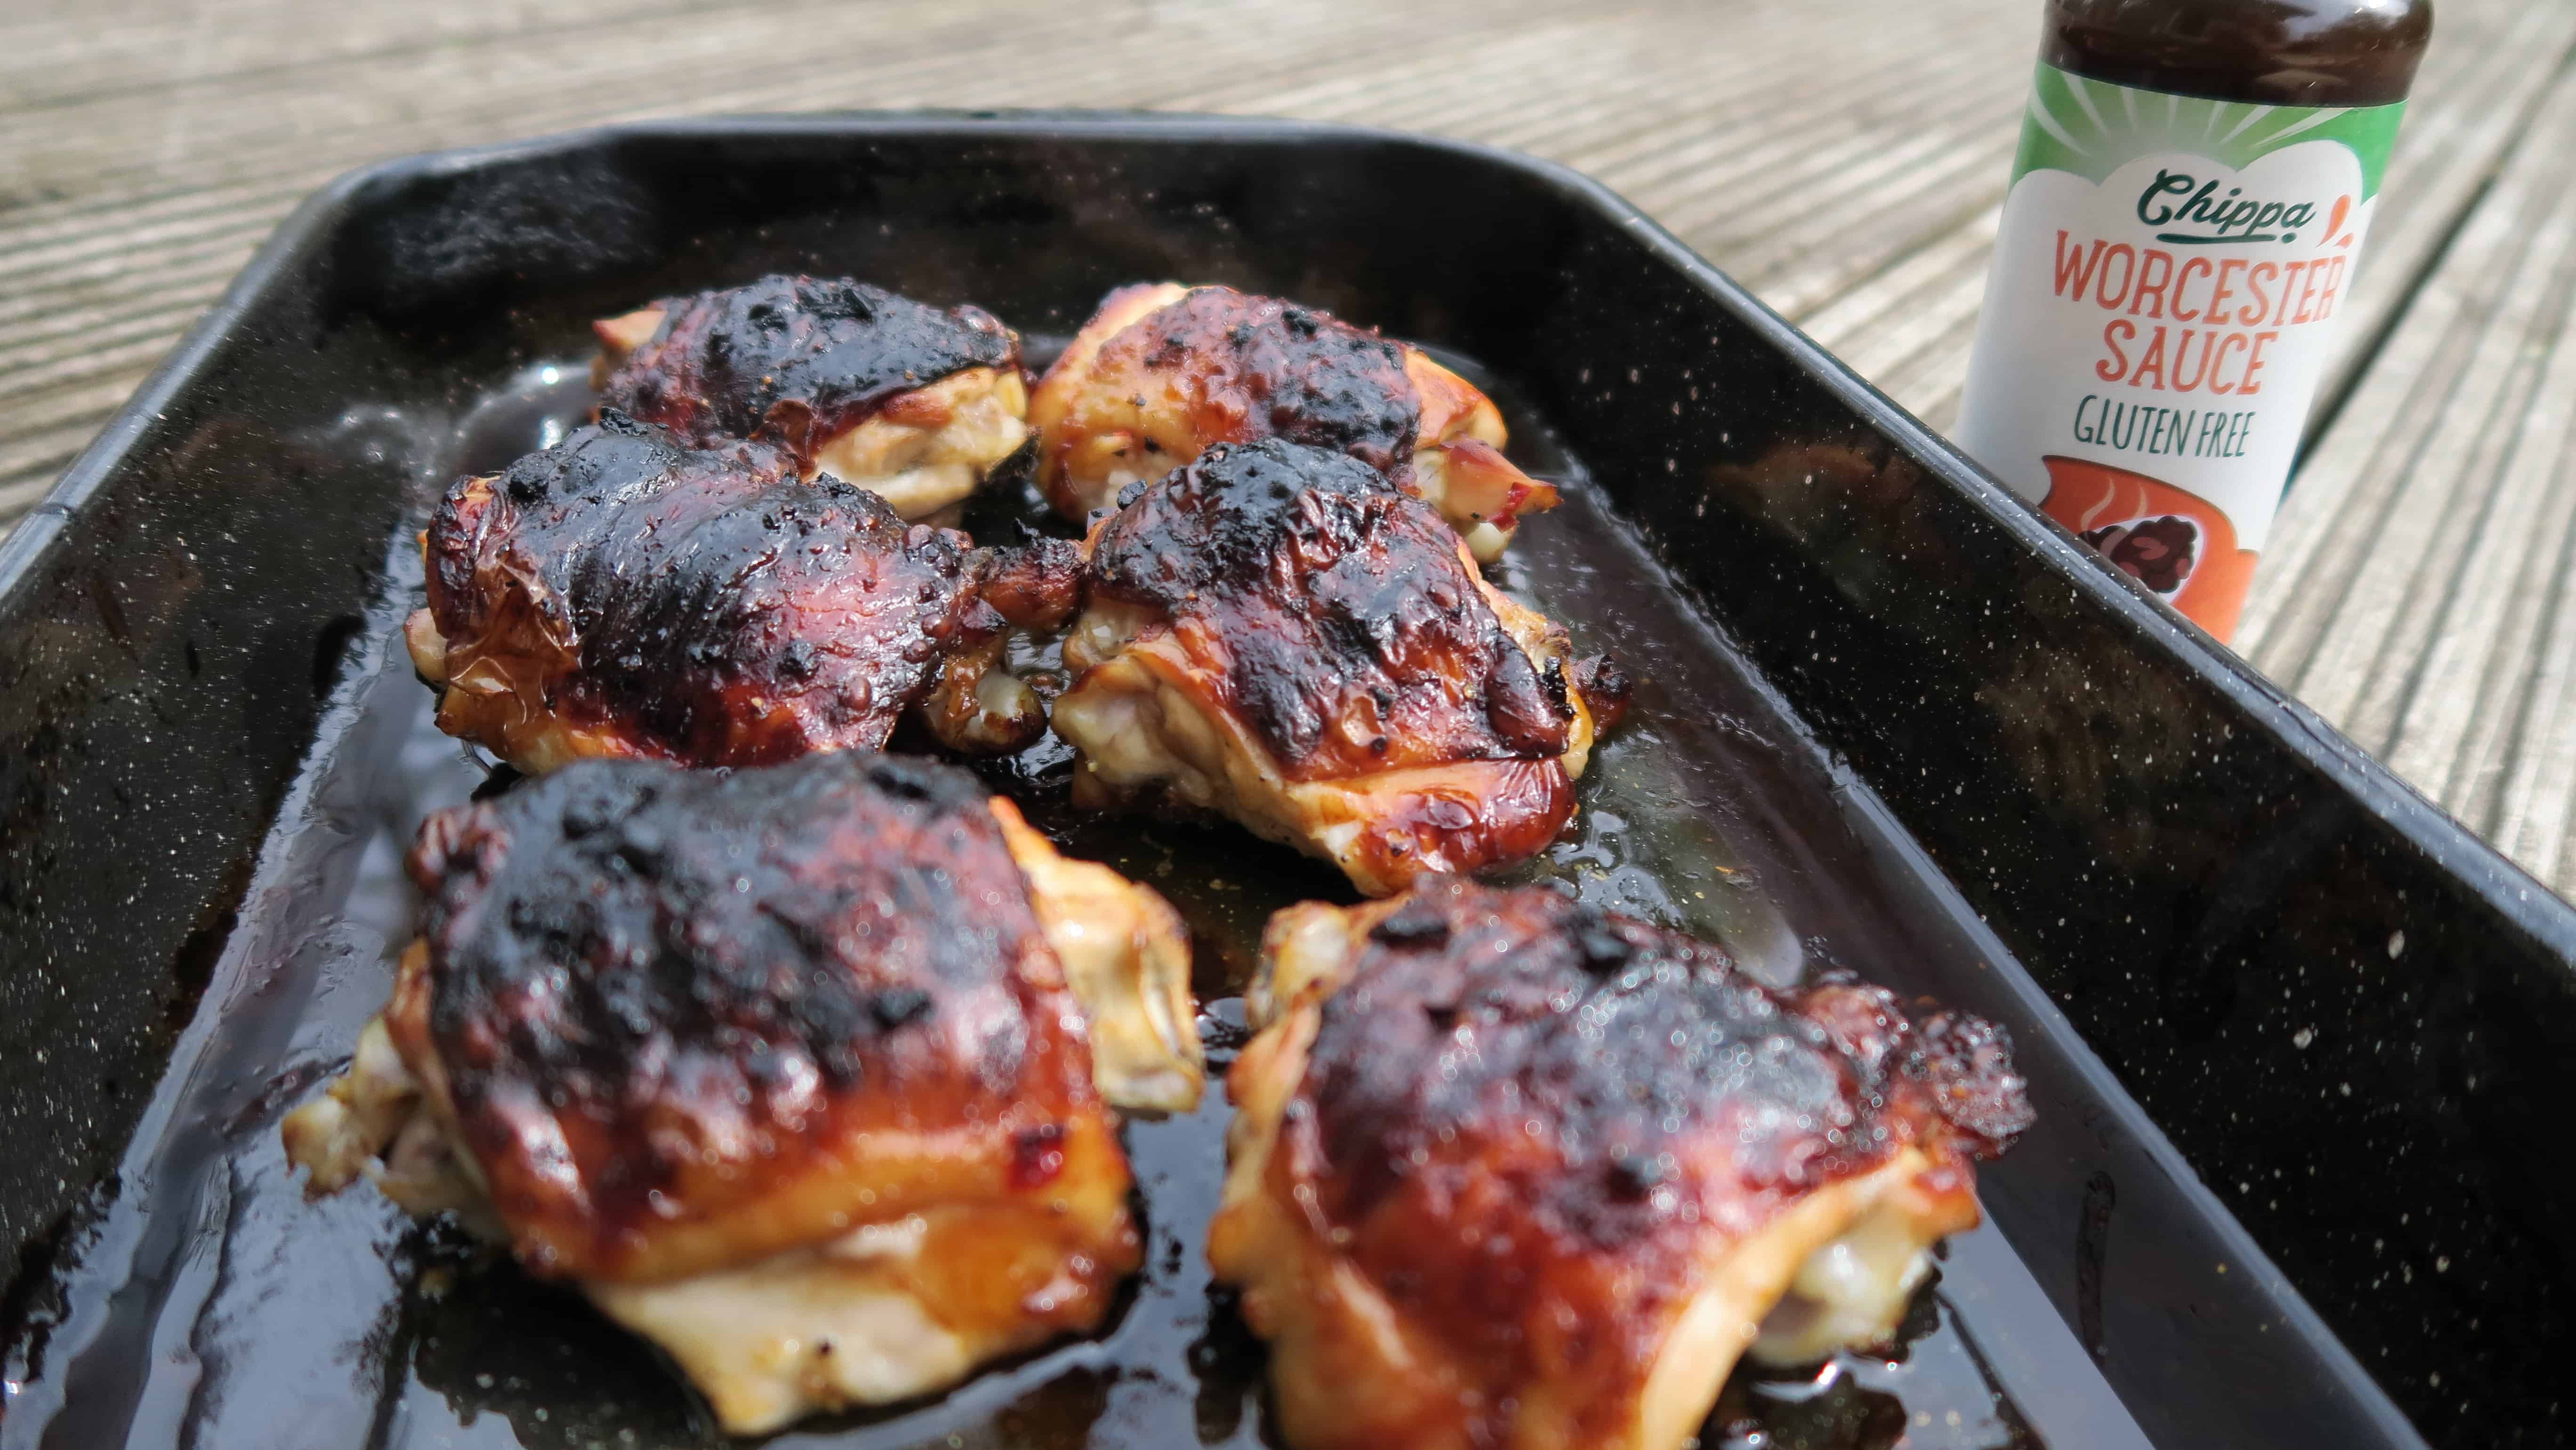 CHIPPA HONEY WORCESTER CHICKEN THIGHS (C) SARAH HOWELLS THE GLUTEN FREE BLOGGER.JPG (31)